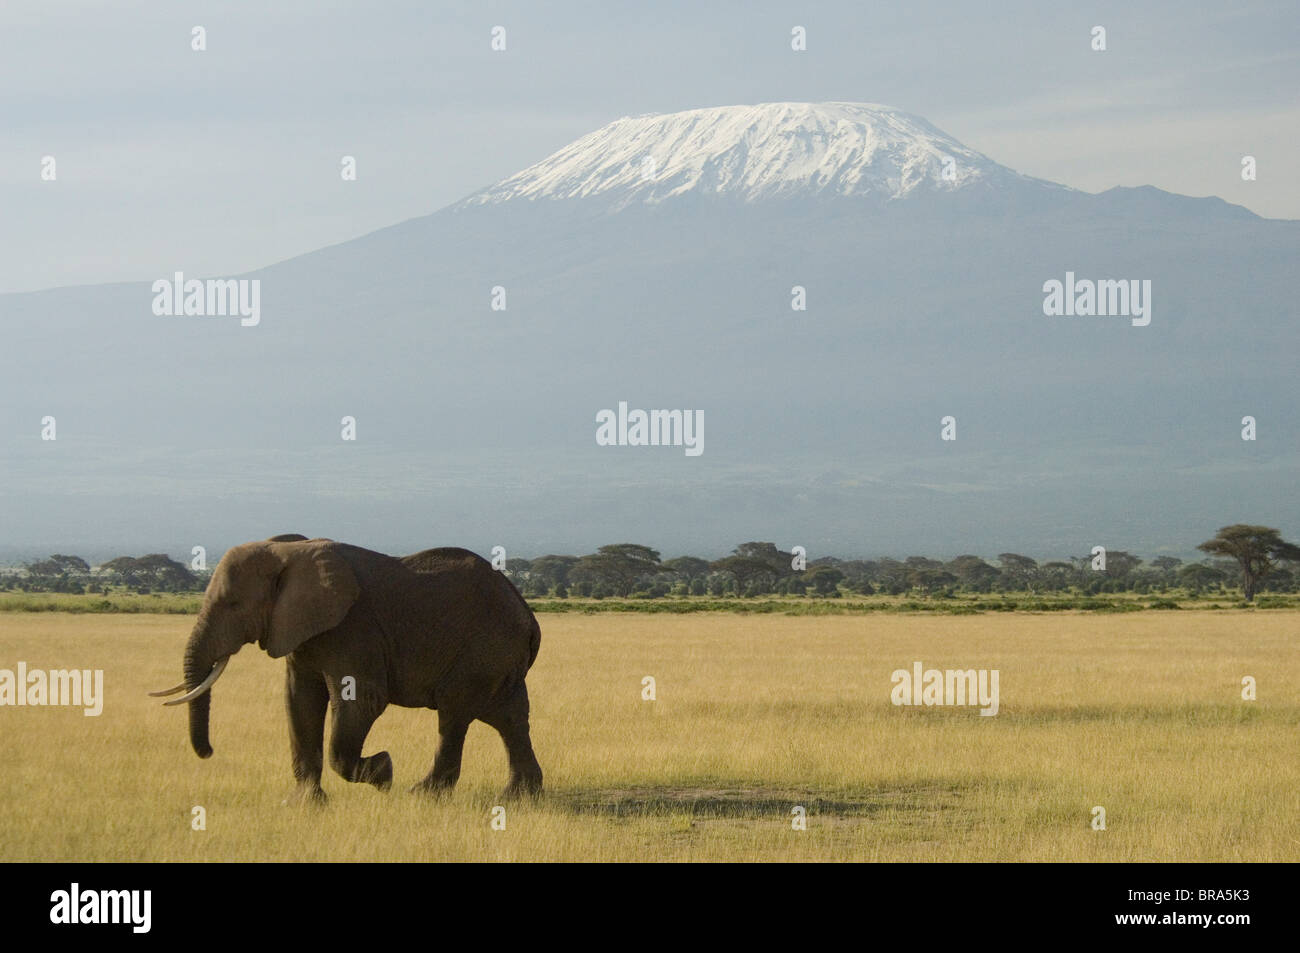 ELEPHANT WALKING IN PLAINS OF AMBOSELI NATIONAL PARK MOUNT KILIMANJARO IN BACKGROUND KENYA AFRICA - Stock Image